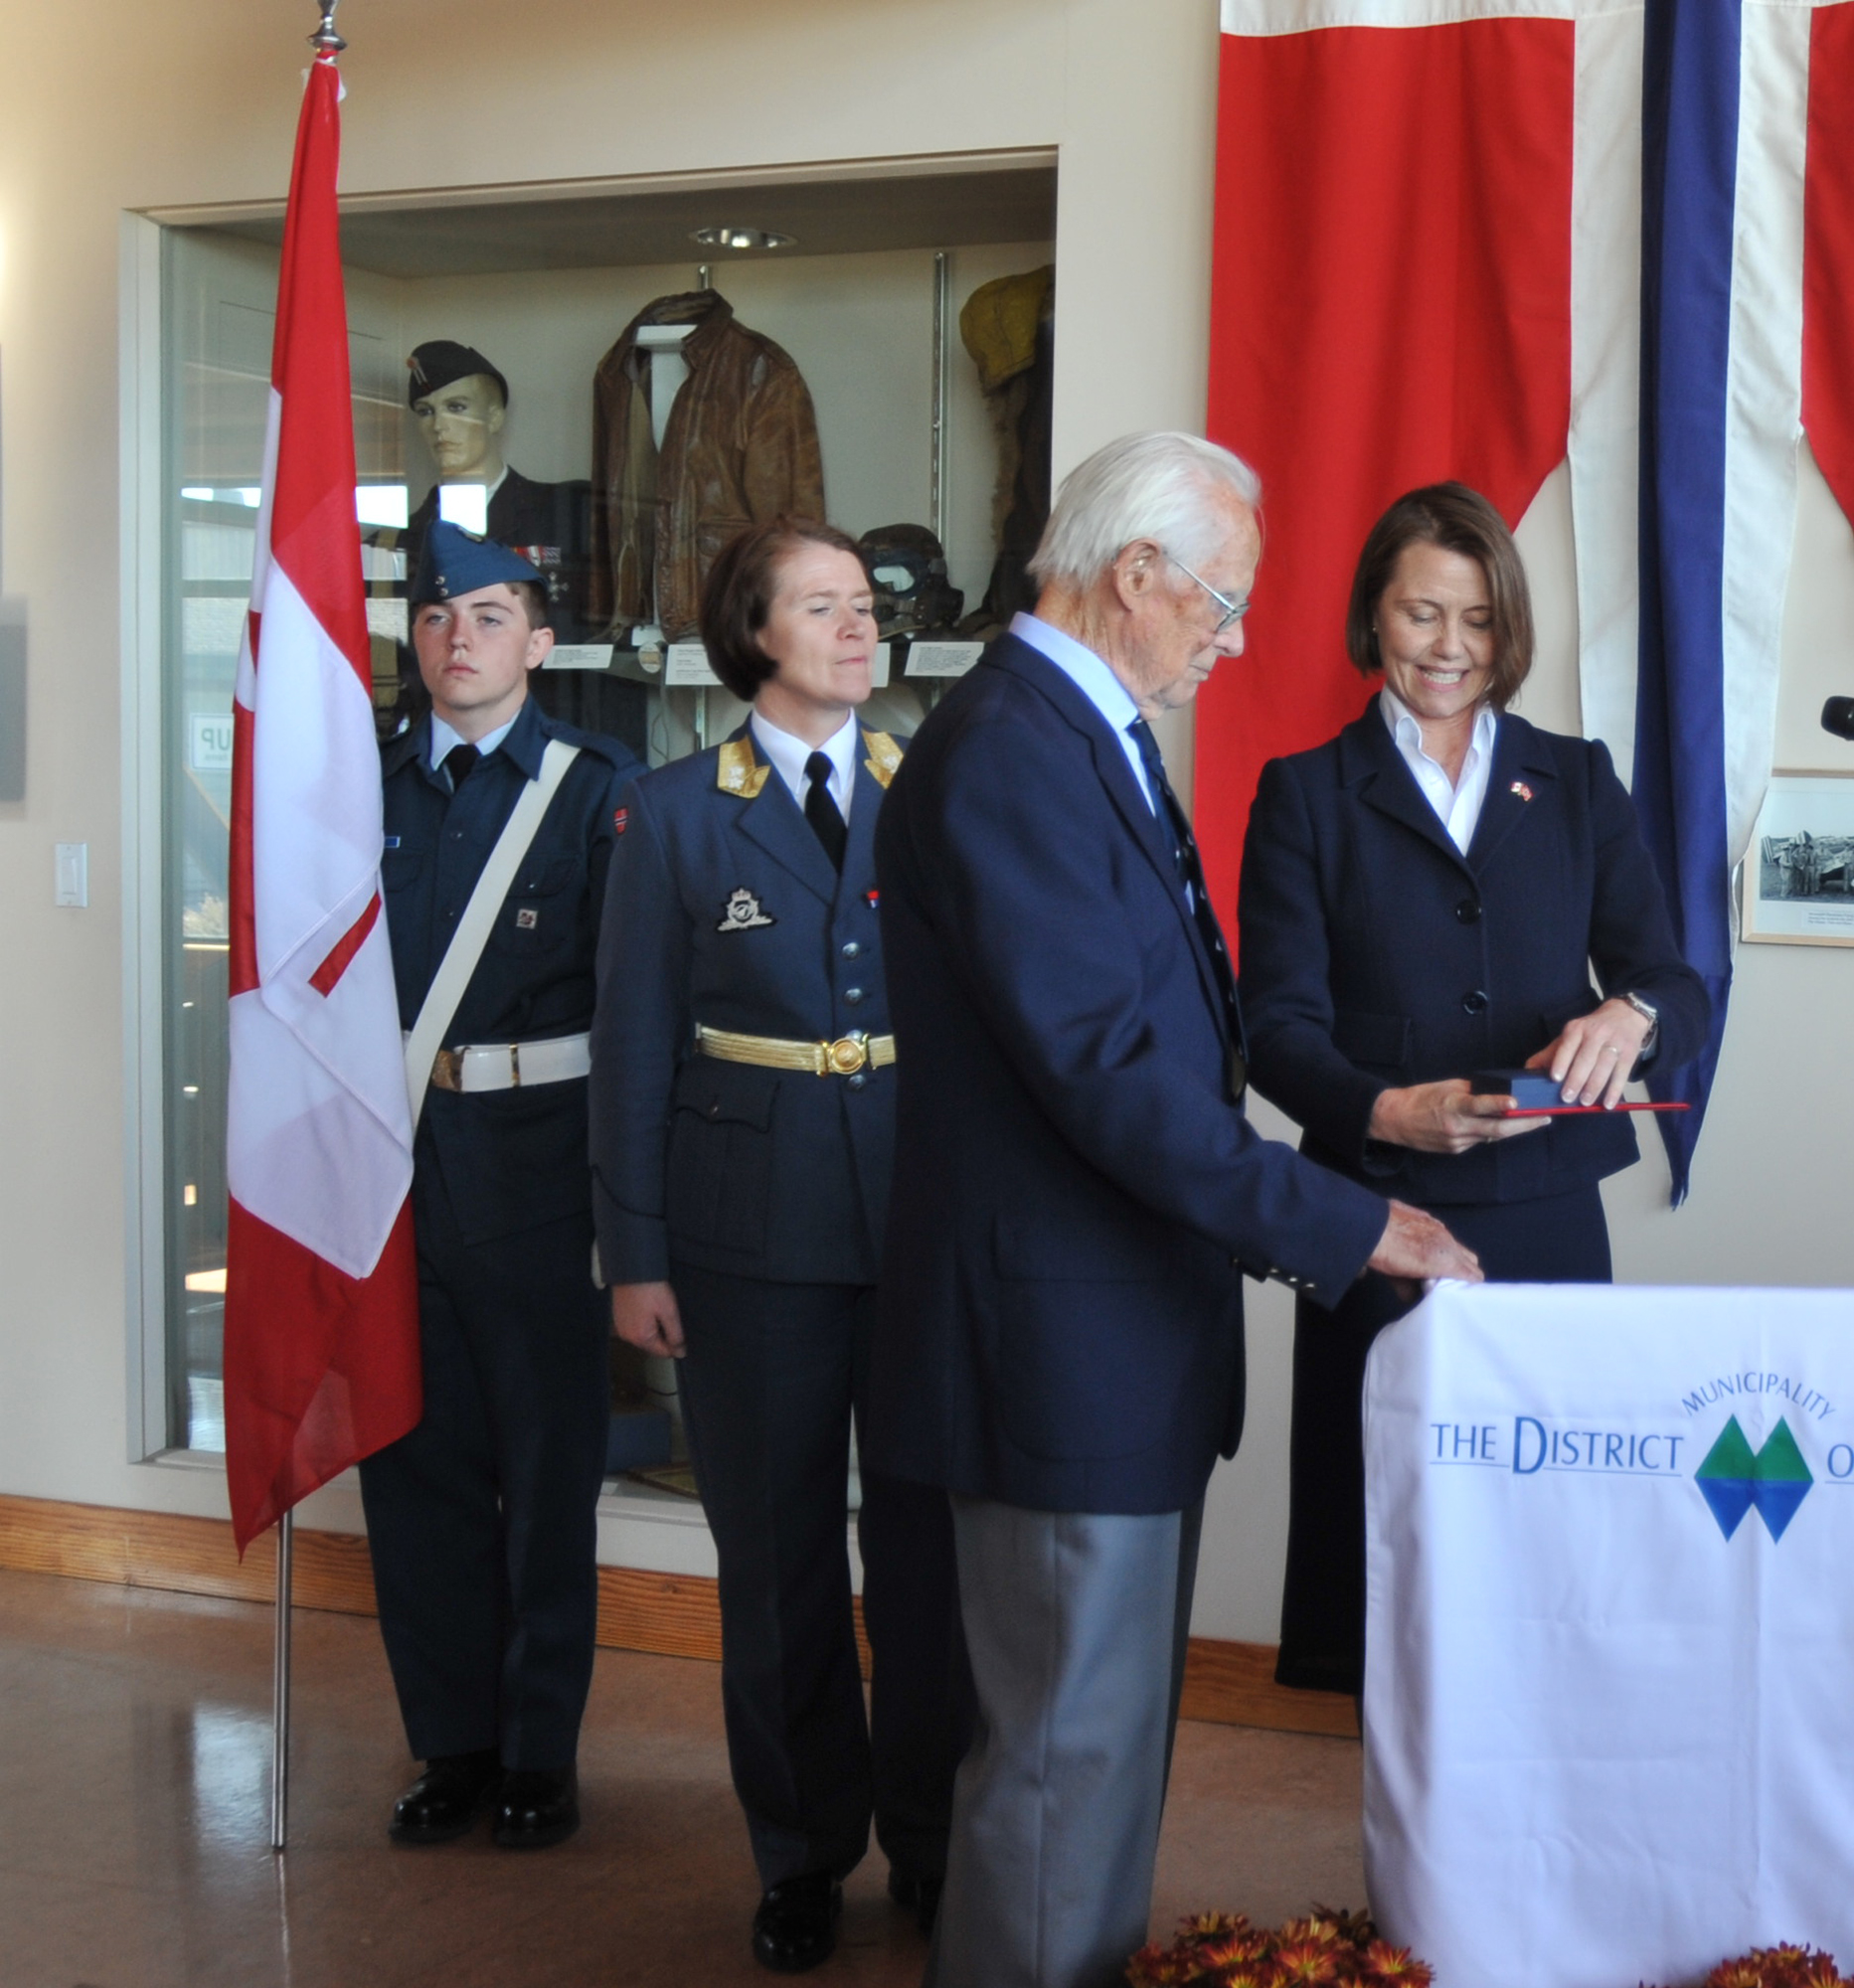 On October 11, 2019, during the reception at Muskoka Airport to celebrate the 75th anniversary of the Royal Norwegian Air Force, Norwegian ambassador Anne Kari H. Ovind presents a medal to Norwegian veteran Dagfinn Stai. PHOTO: Lieutenant Nora Amrane